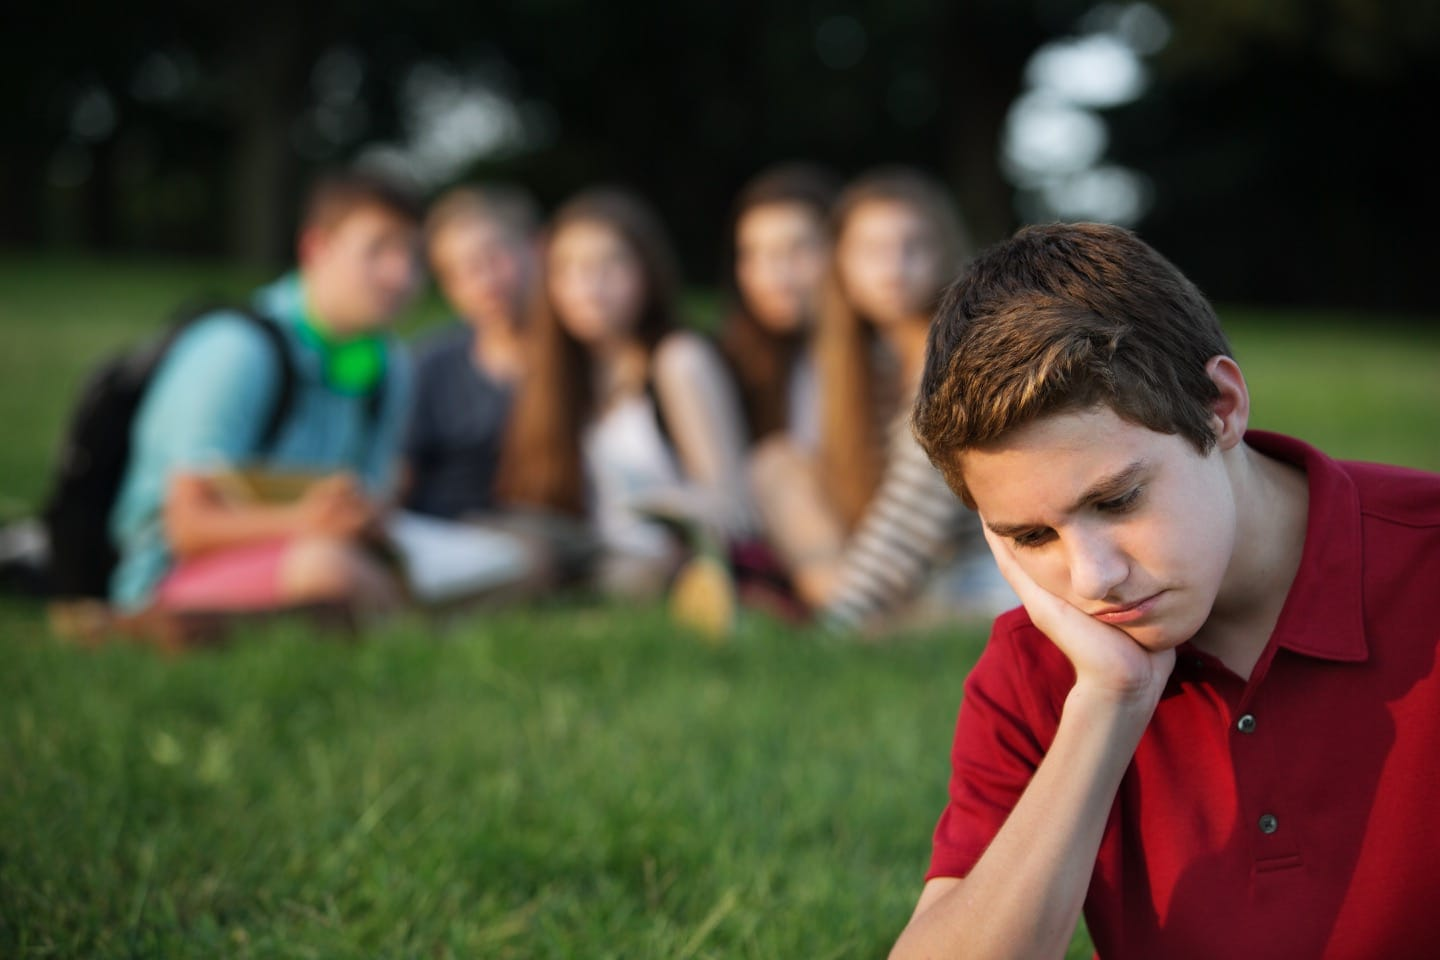 Teenagers coping with rejection - Your Health